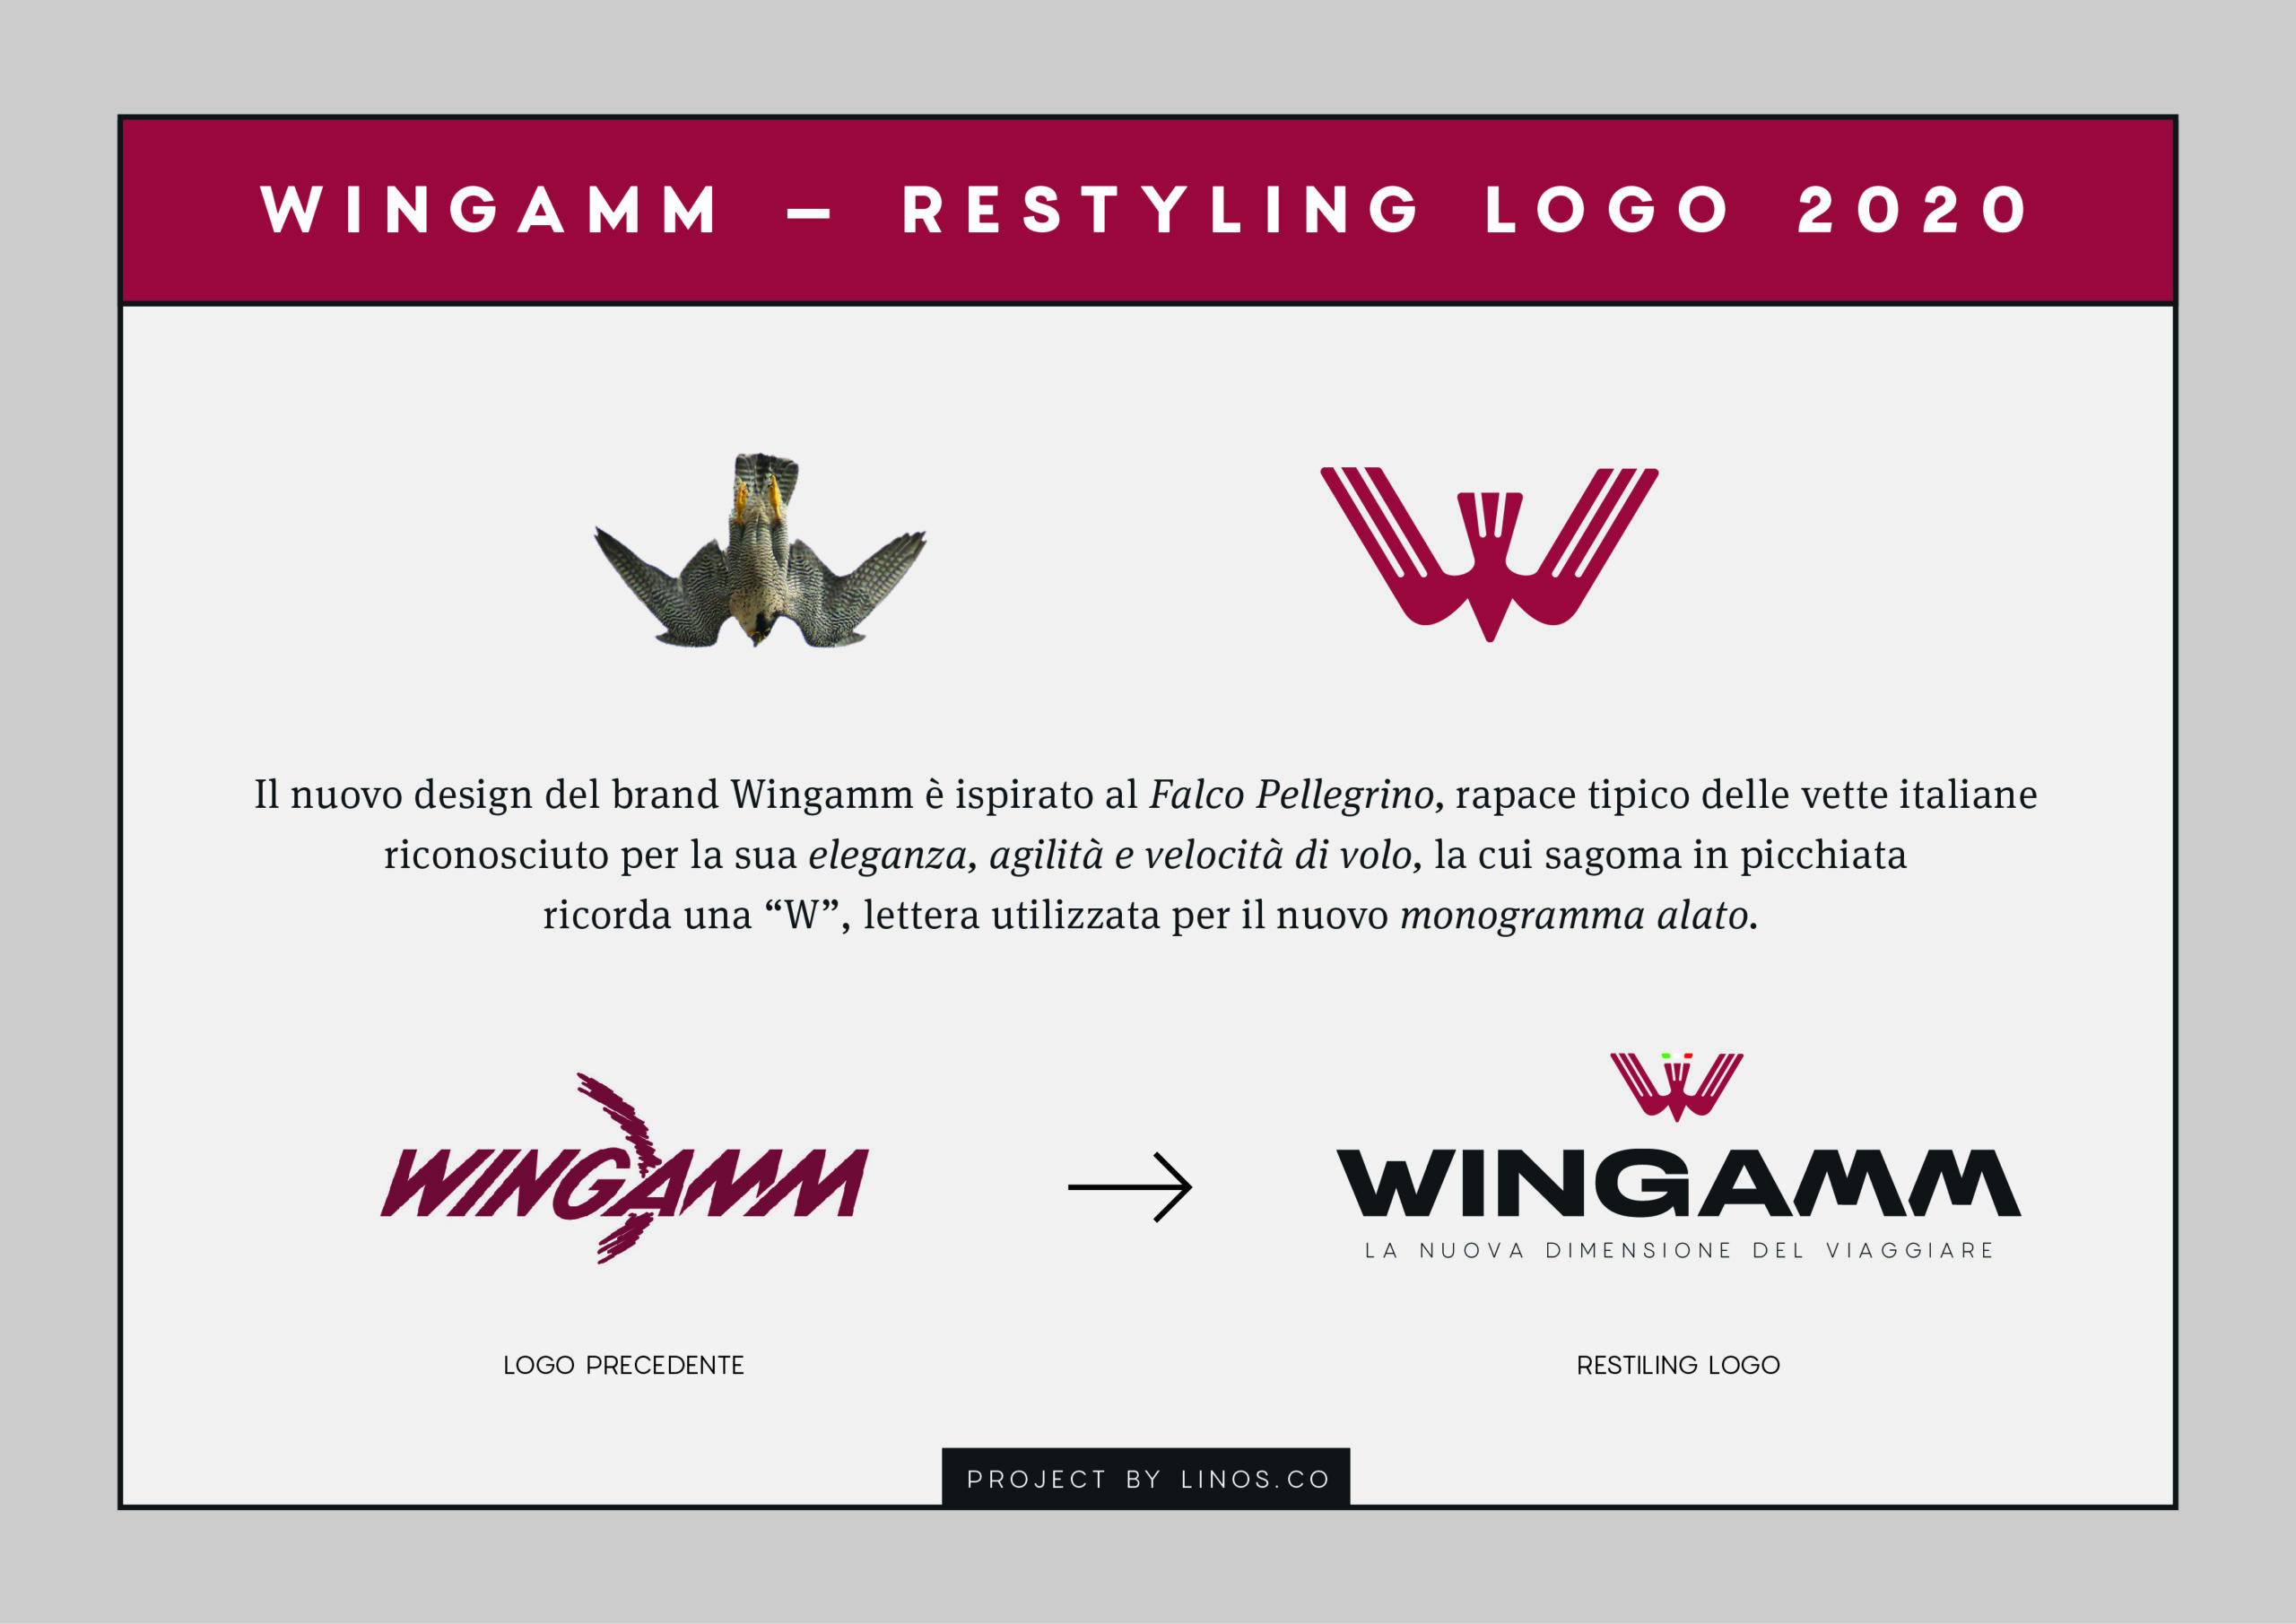 The historical symbols: Ala and W merge into a hawk, the new Wingamm - News - camper logo is born